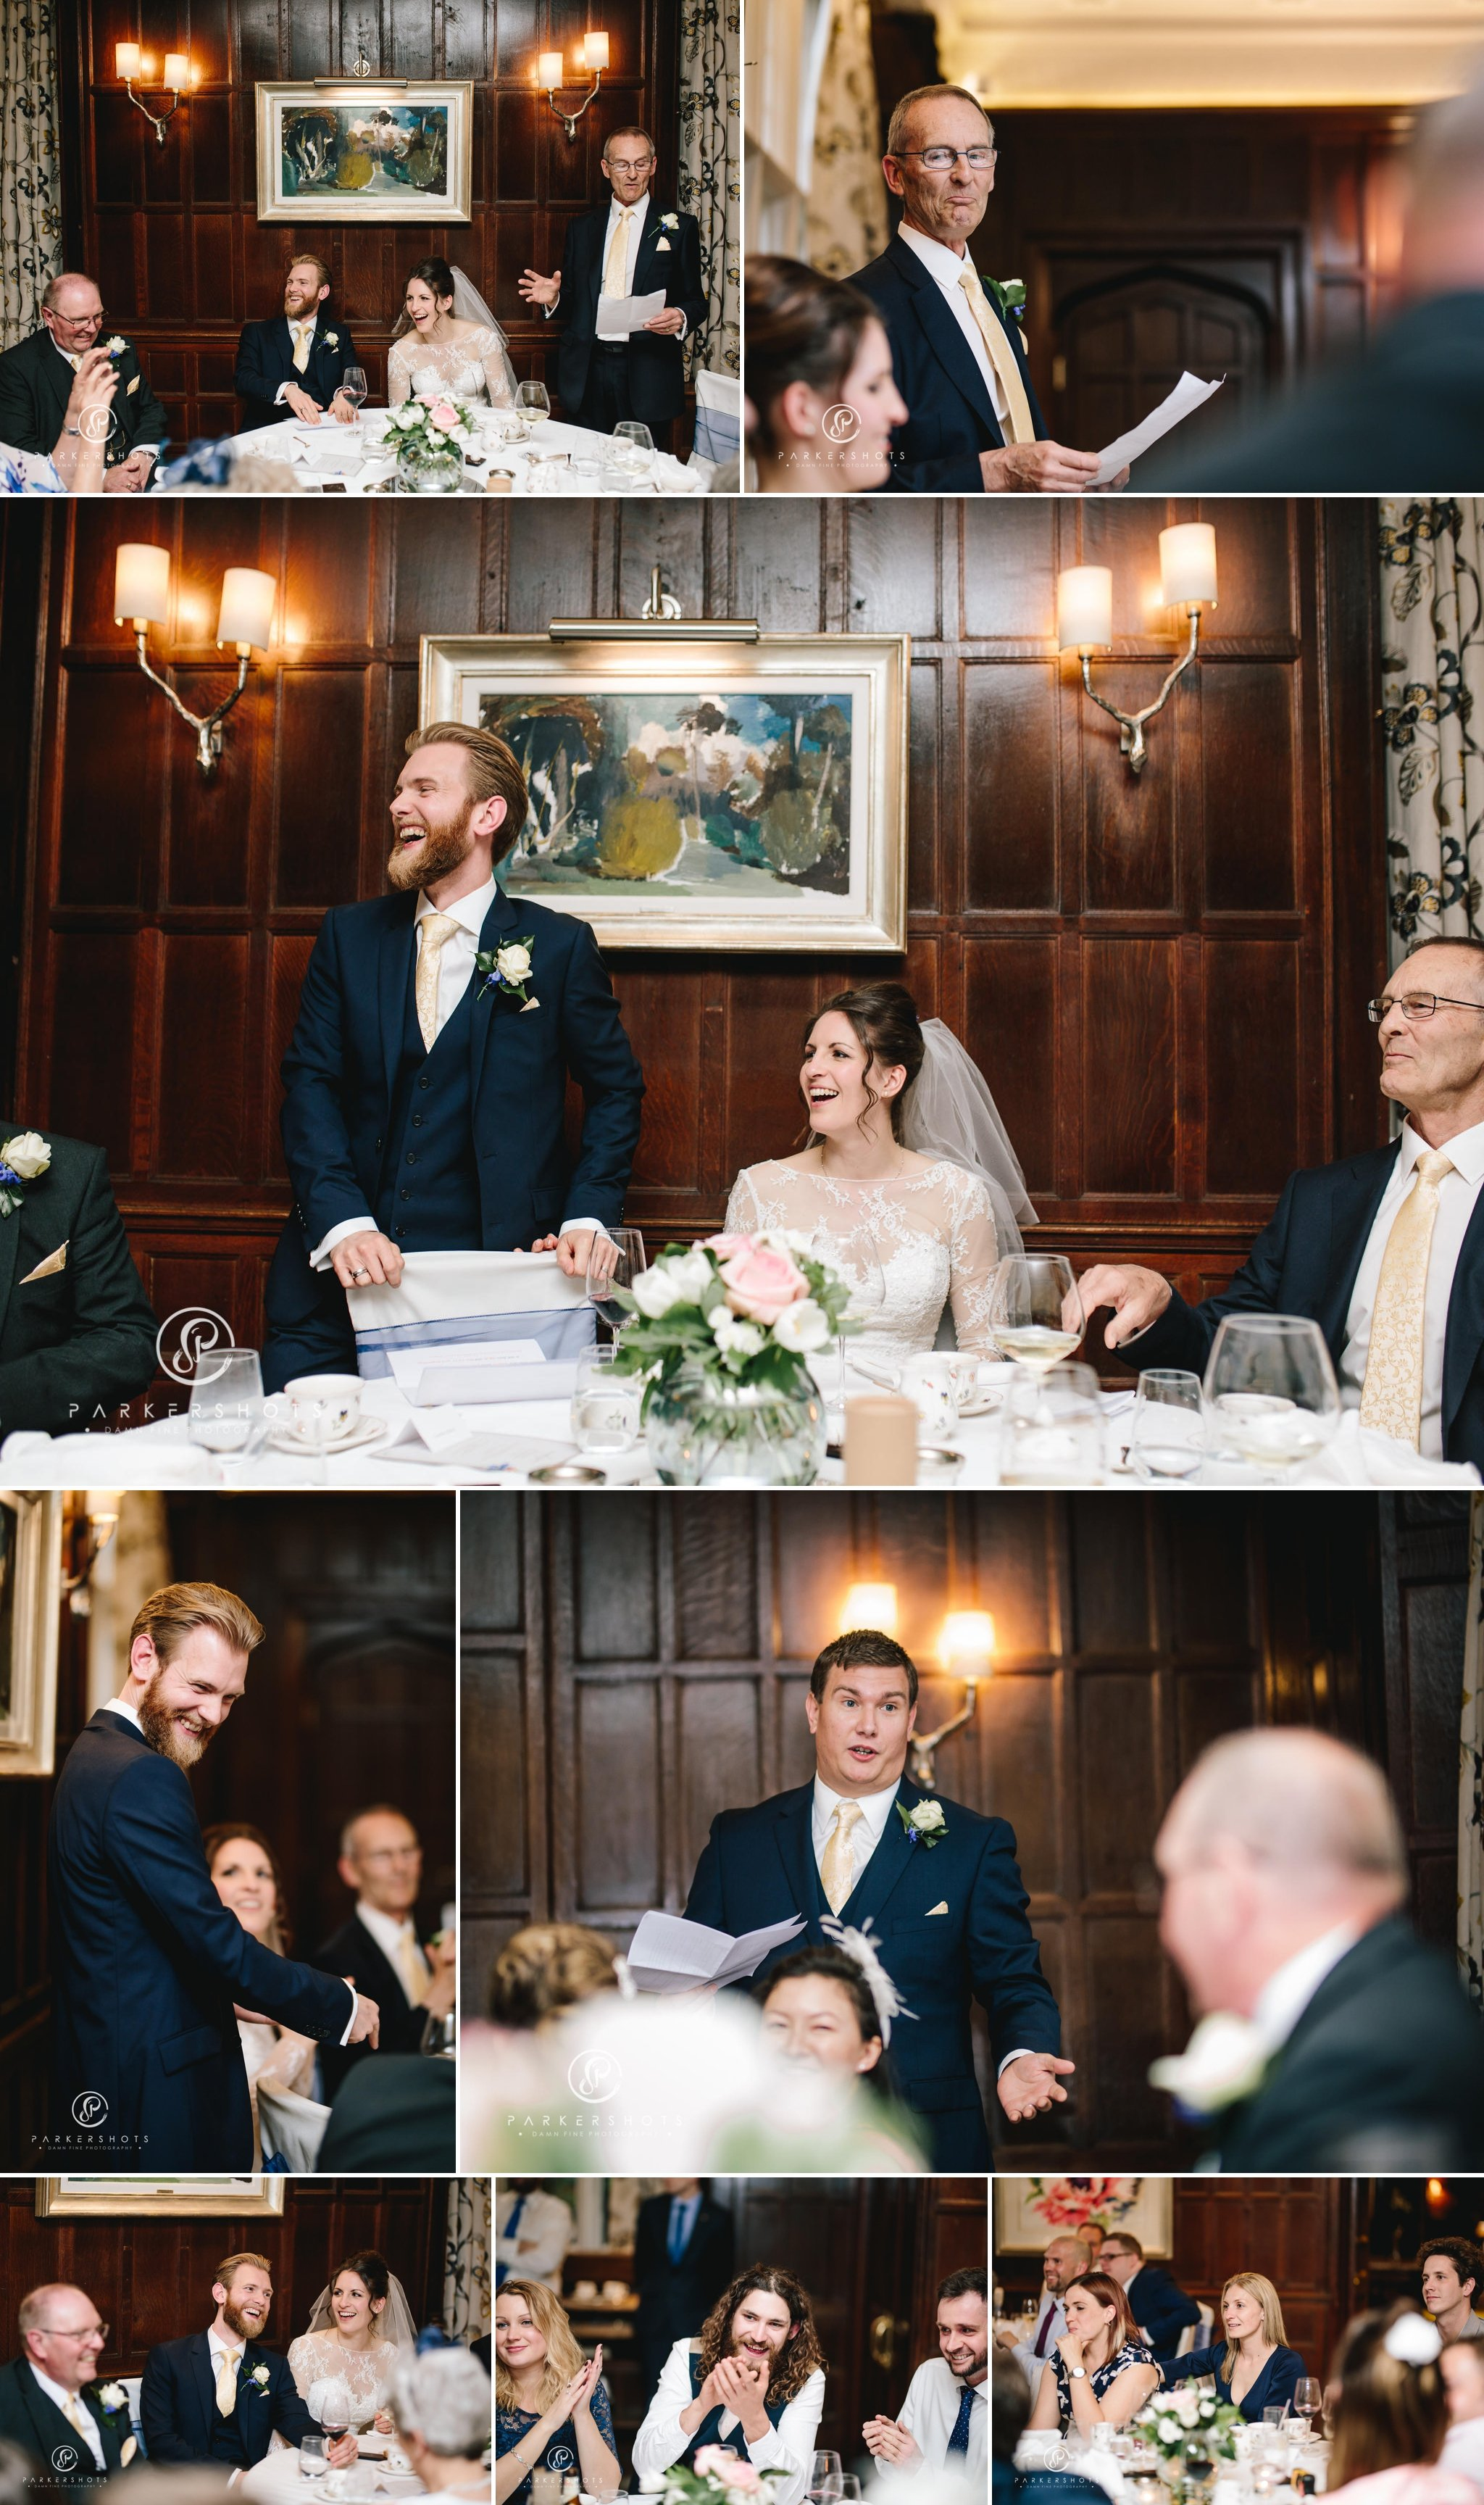 wedding speeches at Gravetye Manor